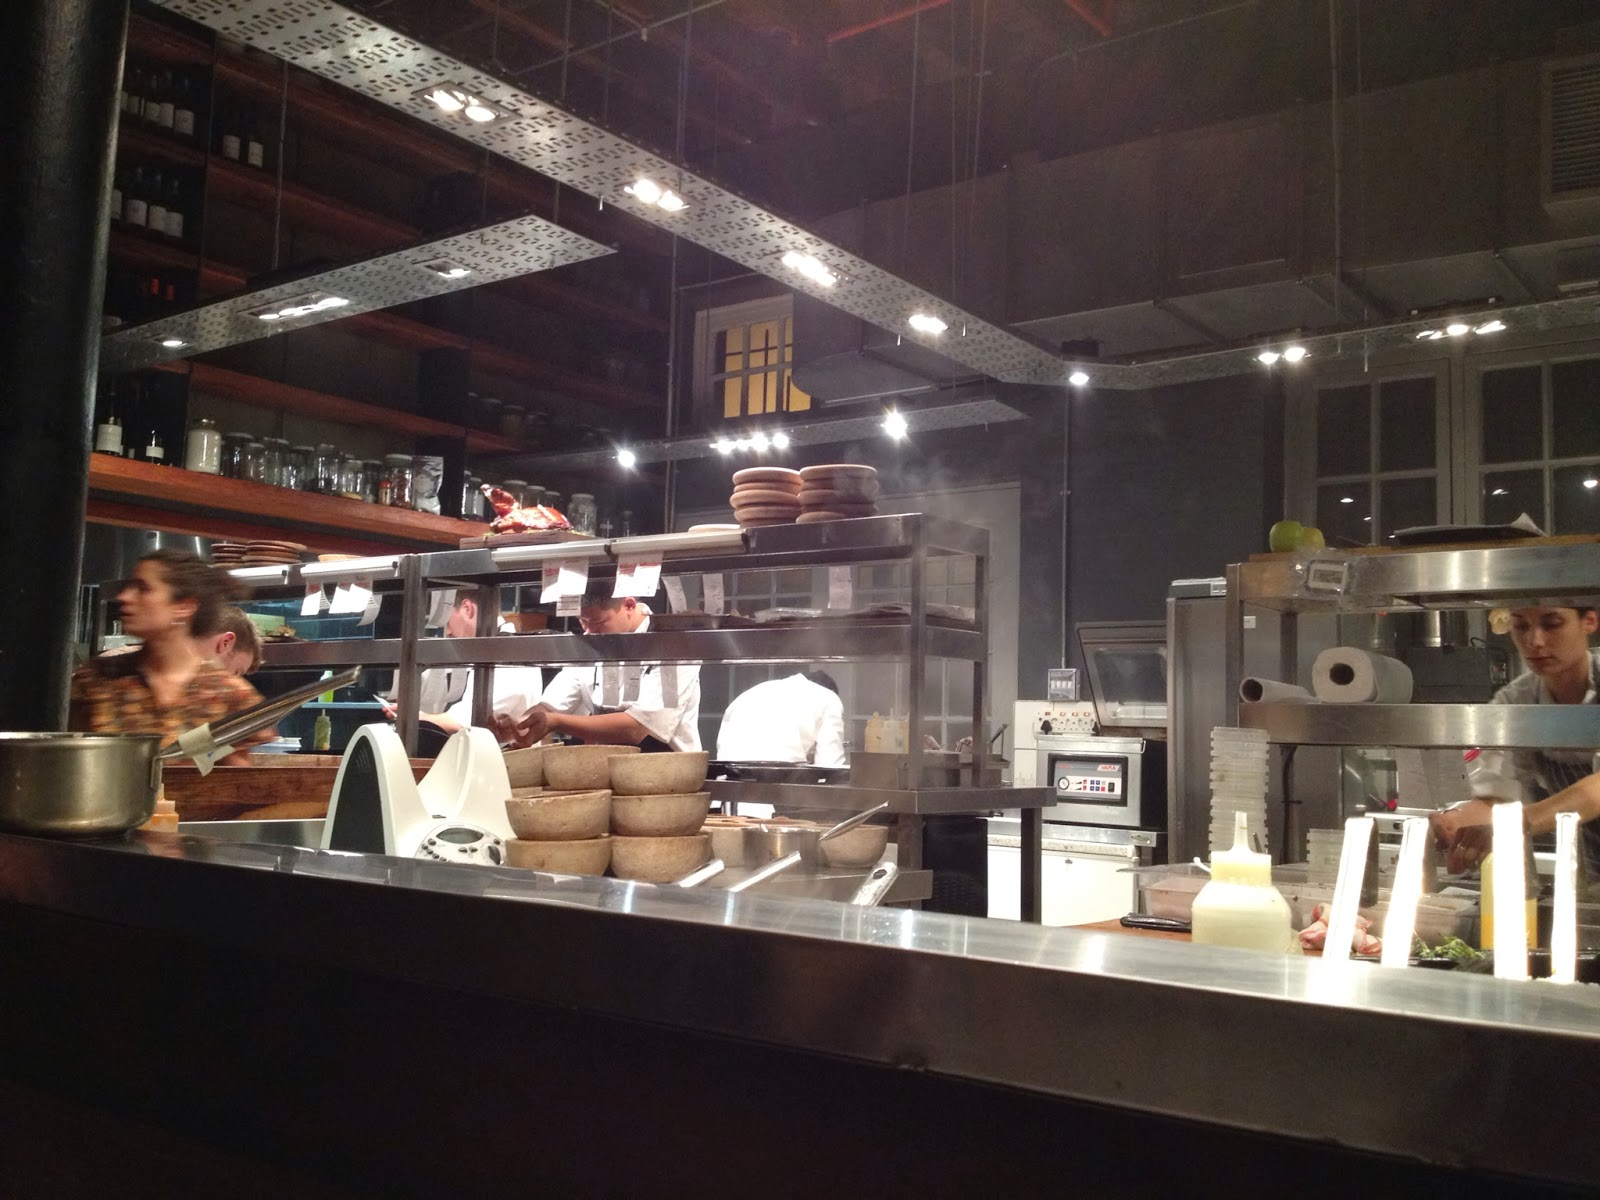 Cape Town - A view of the open kitchen